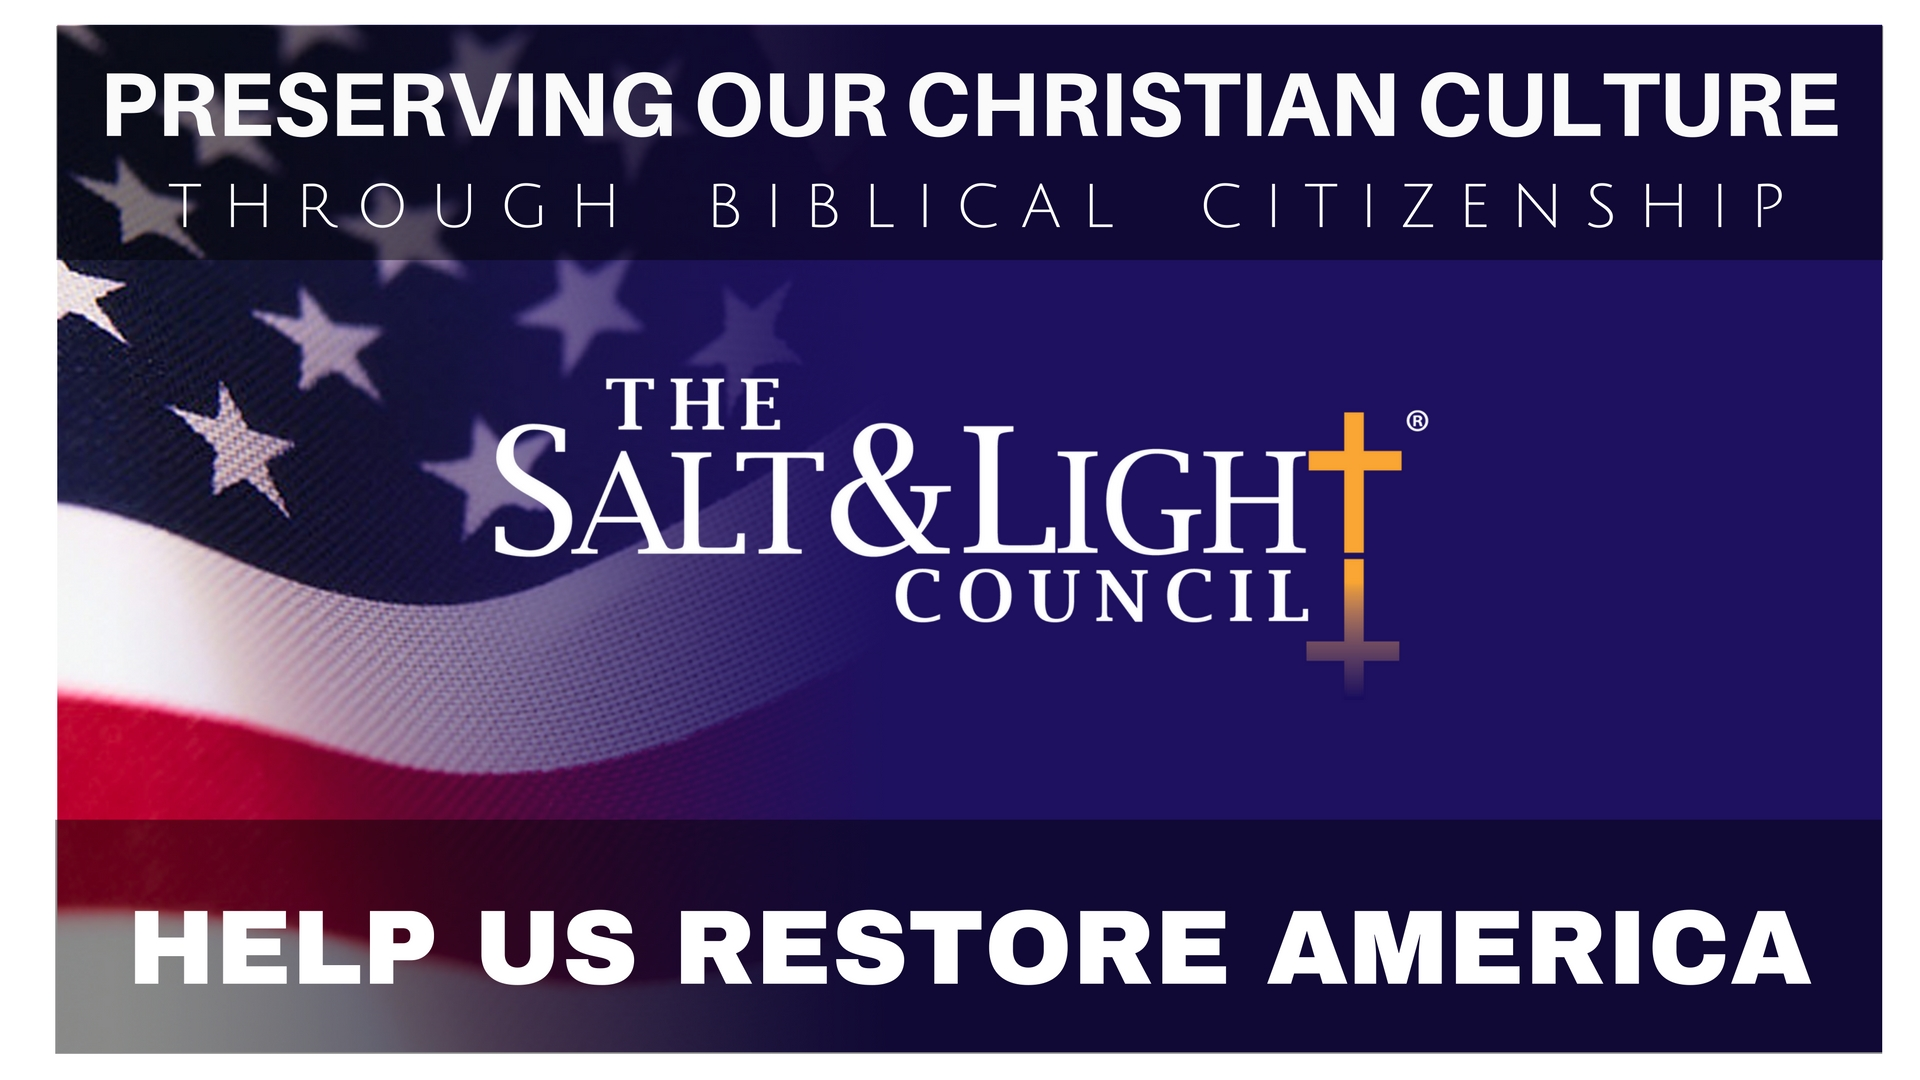 Help Us Restore America - The Salt & Light Council